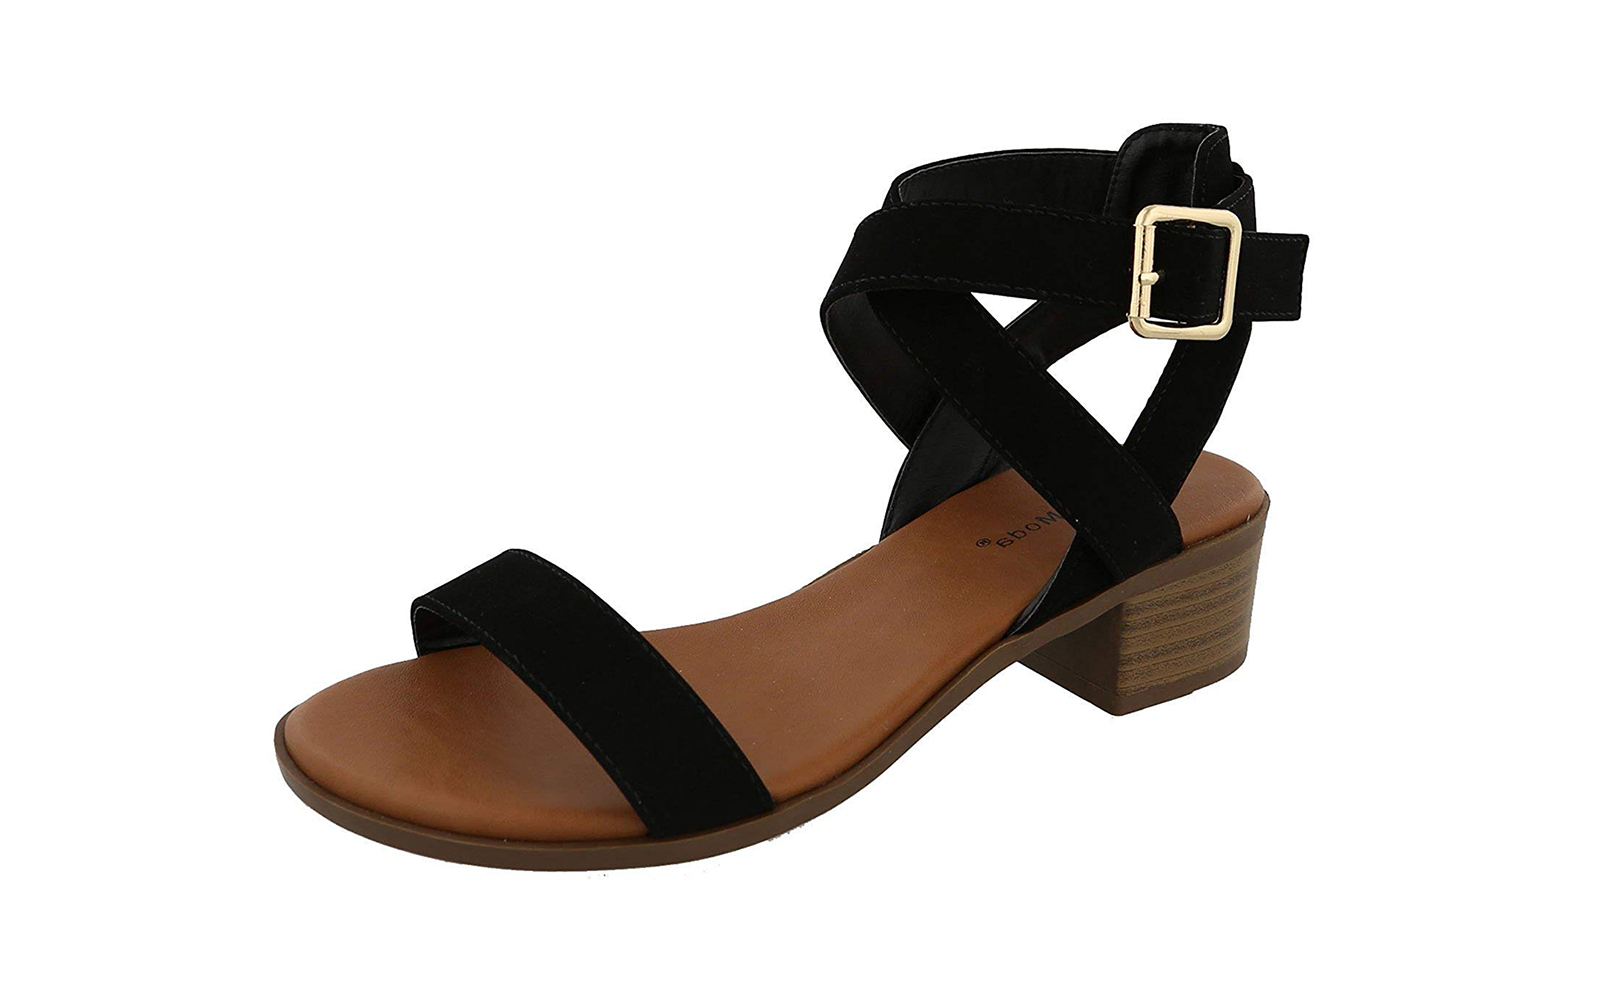 534f3d4bf Most Comfortable Option with Ankle Support  Top Moda Vision-75 Ankle Strap  Sandal